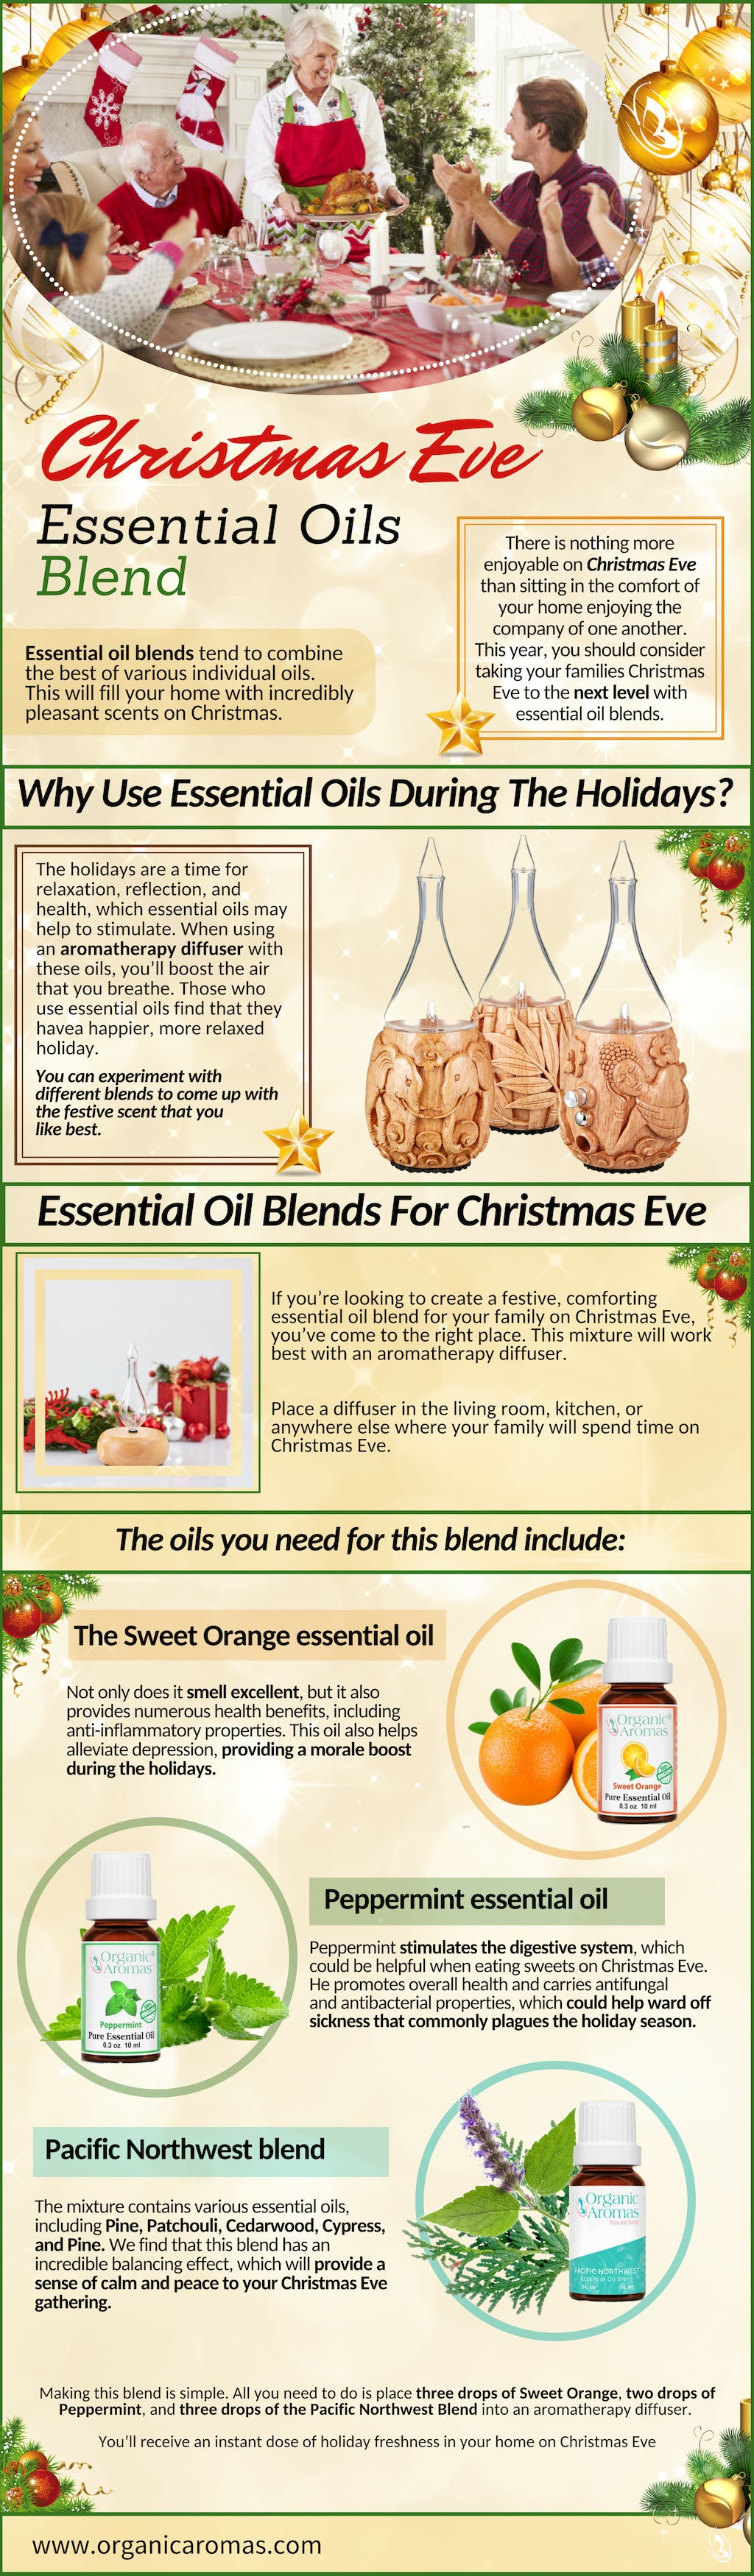 Christmas Eve Essential Oils Blend